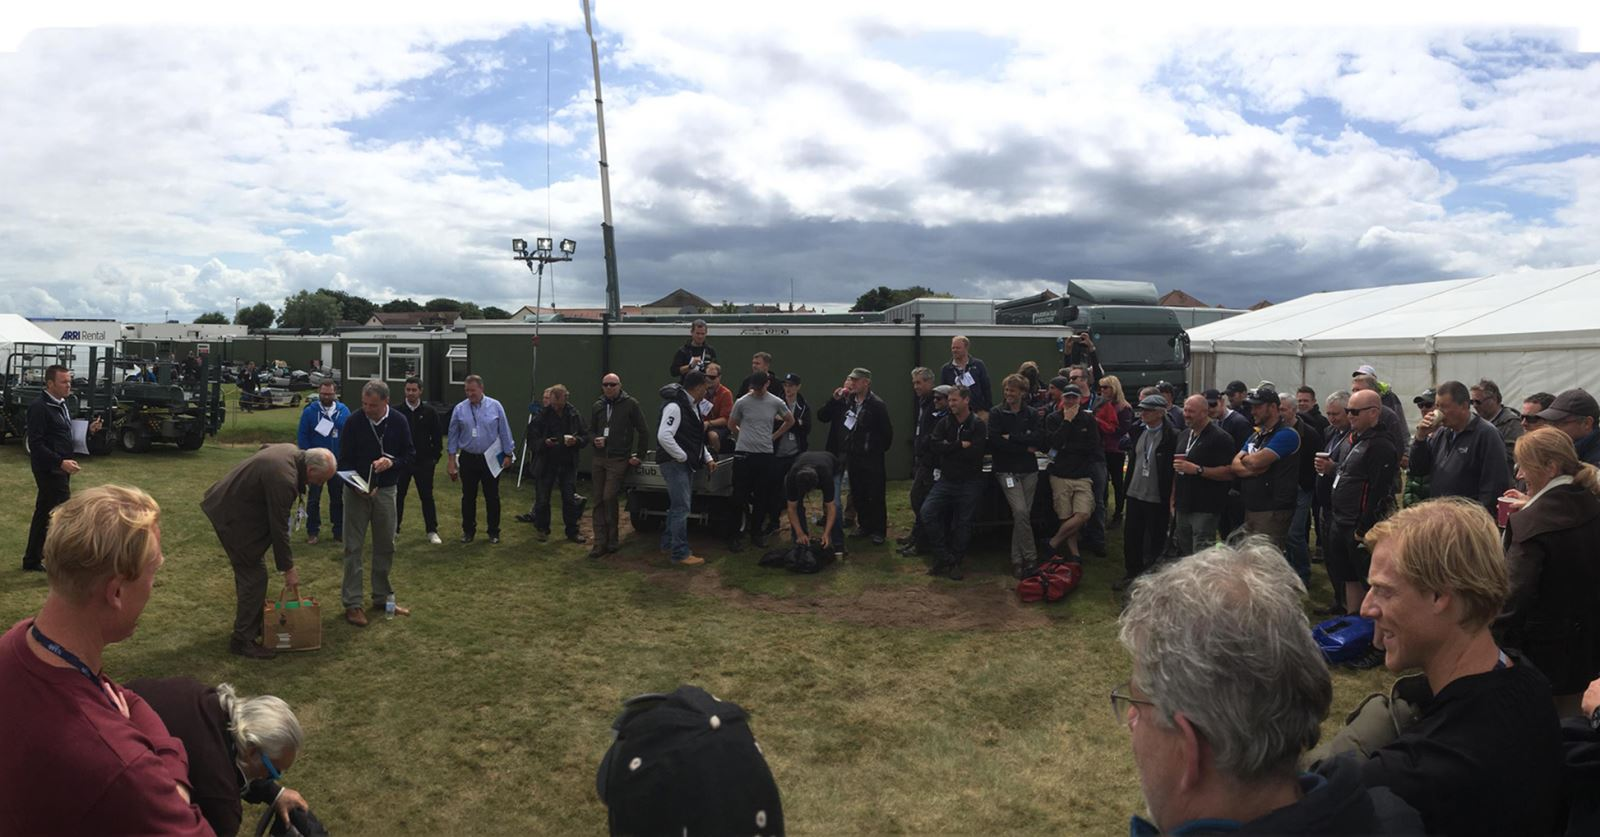 Briefing the (very large) crew at The Open Golf Championships at Royal Troon this weekend